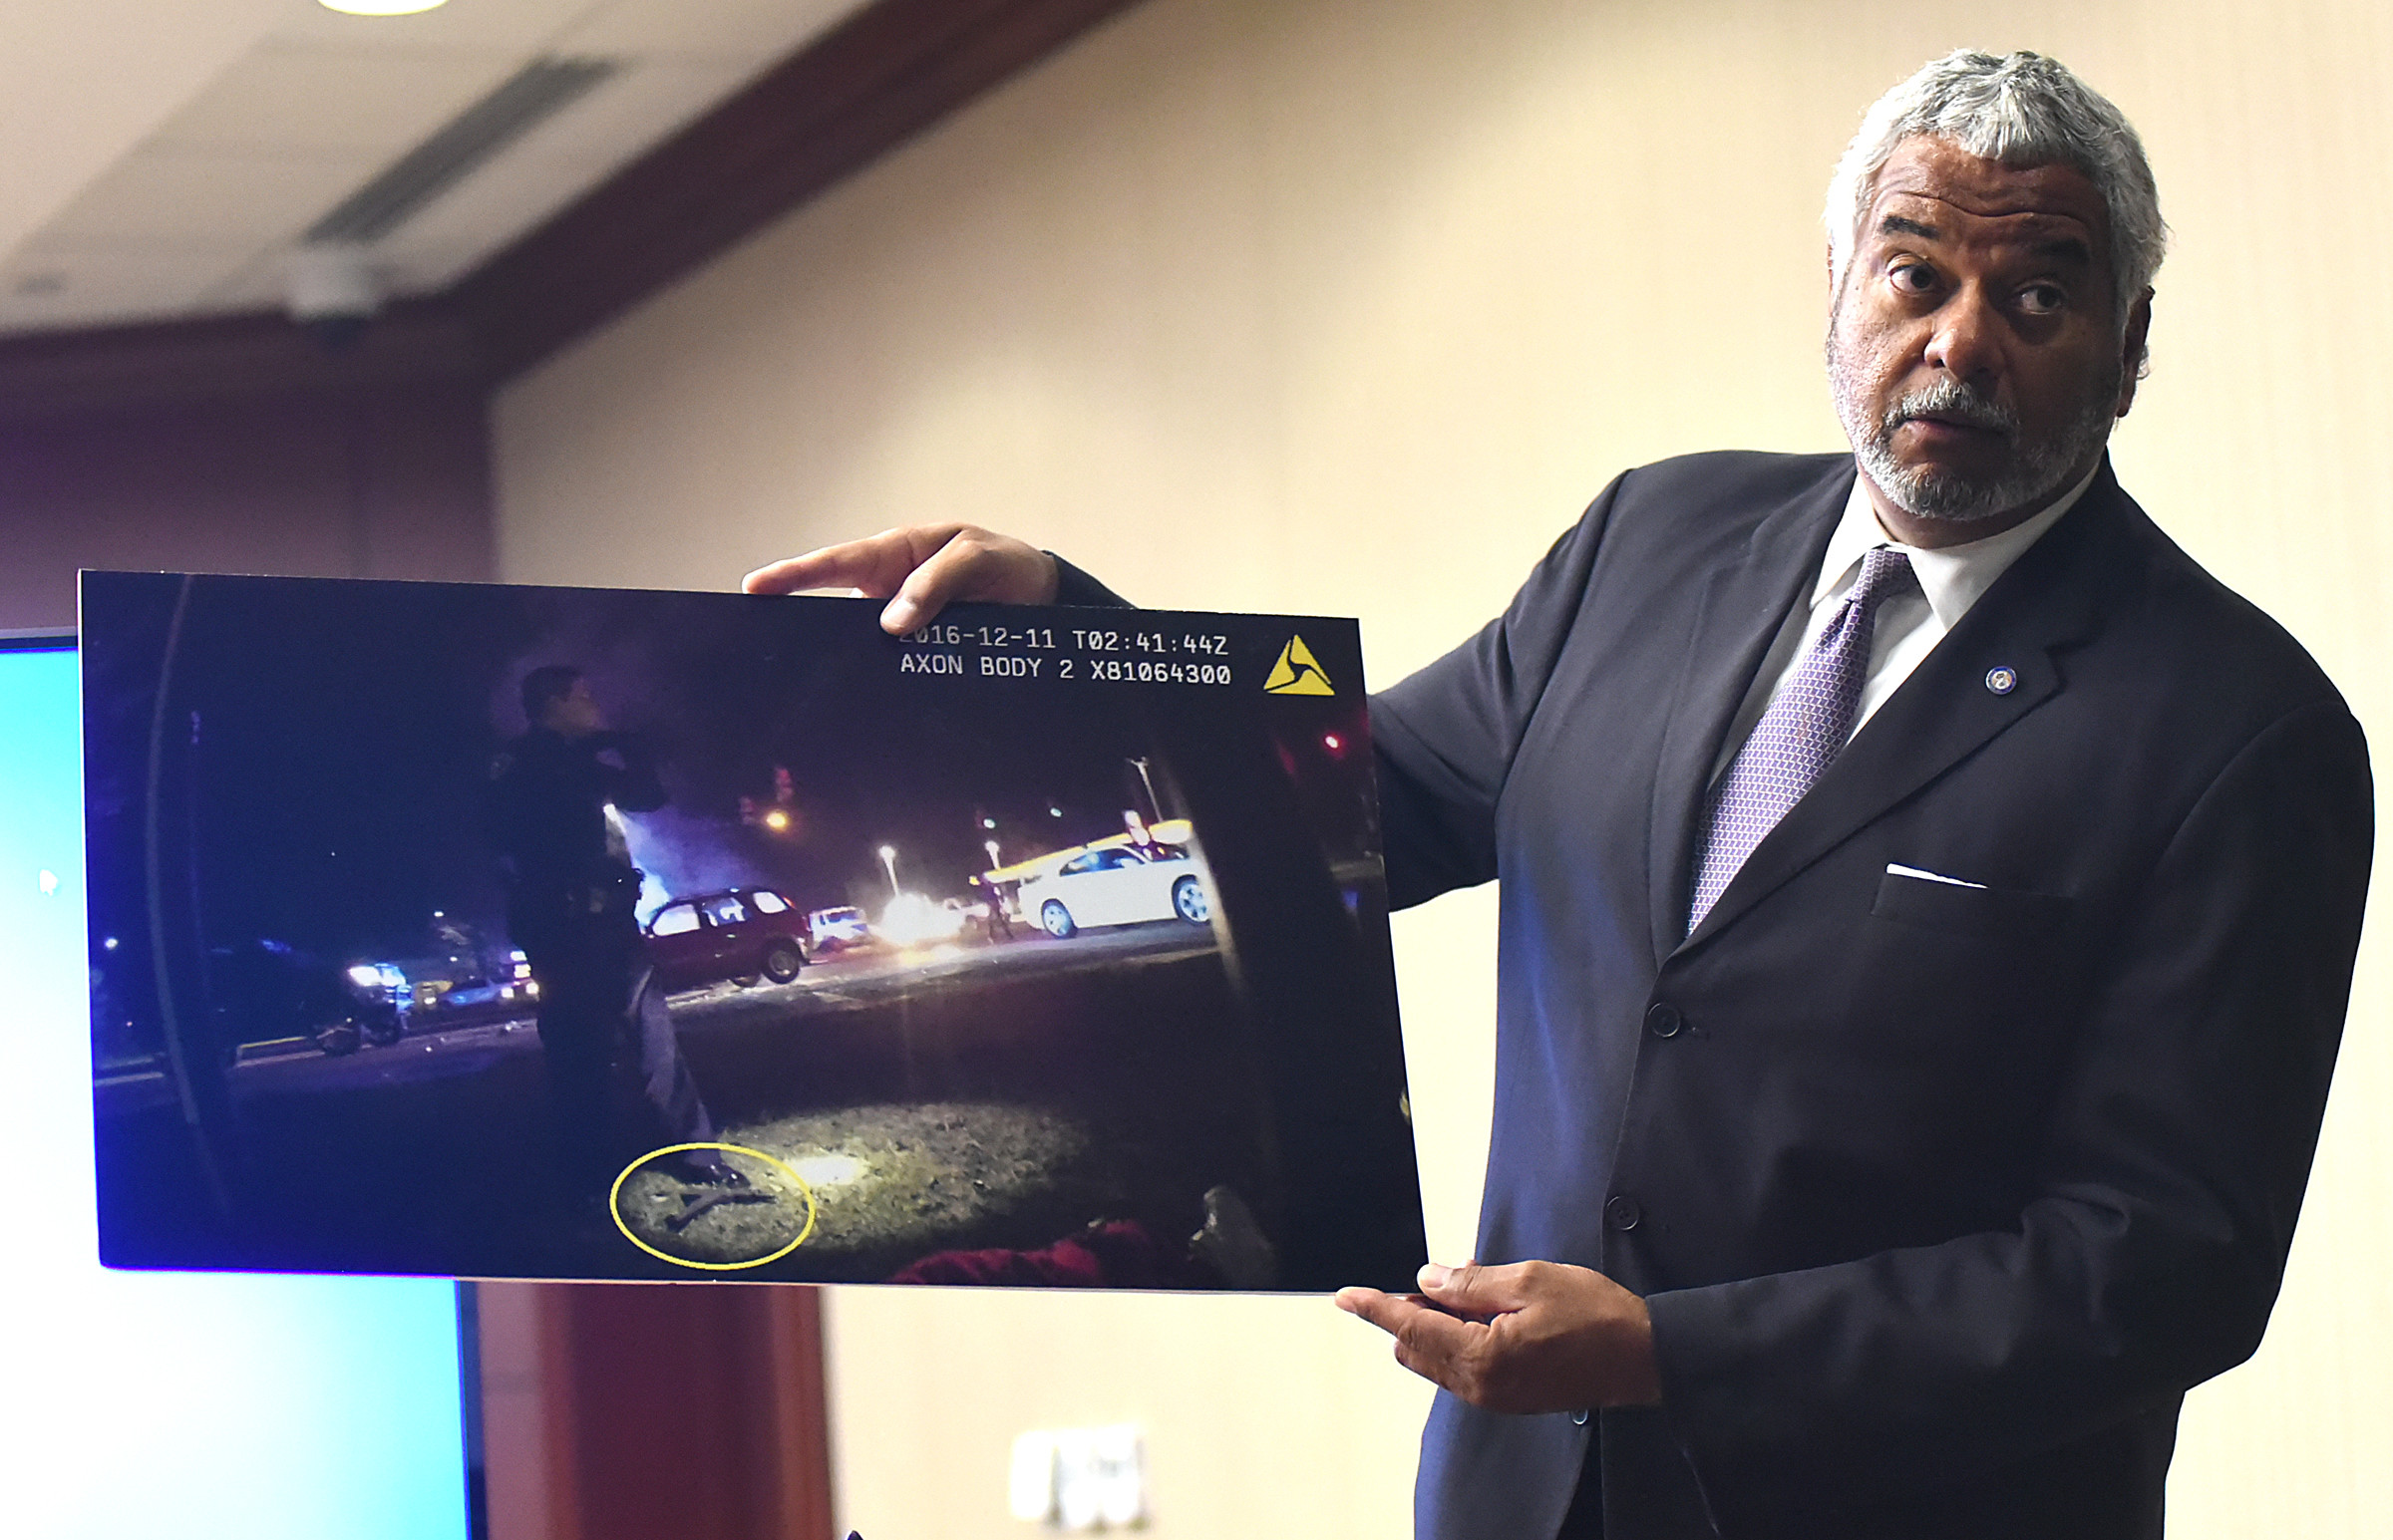 Family sees video of police shooting; will continue lawsuit